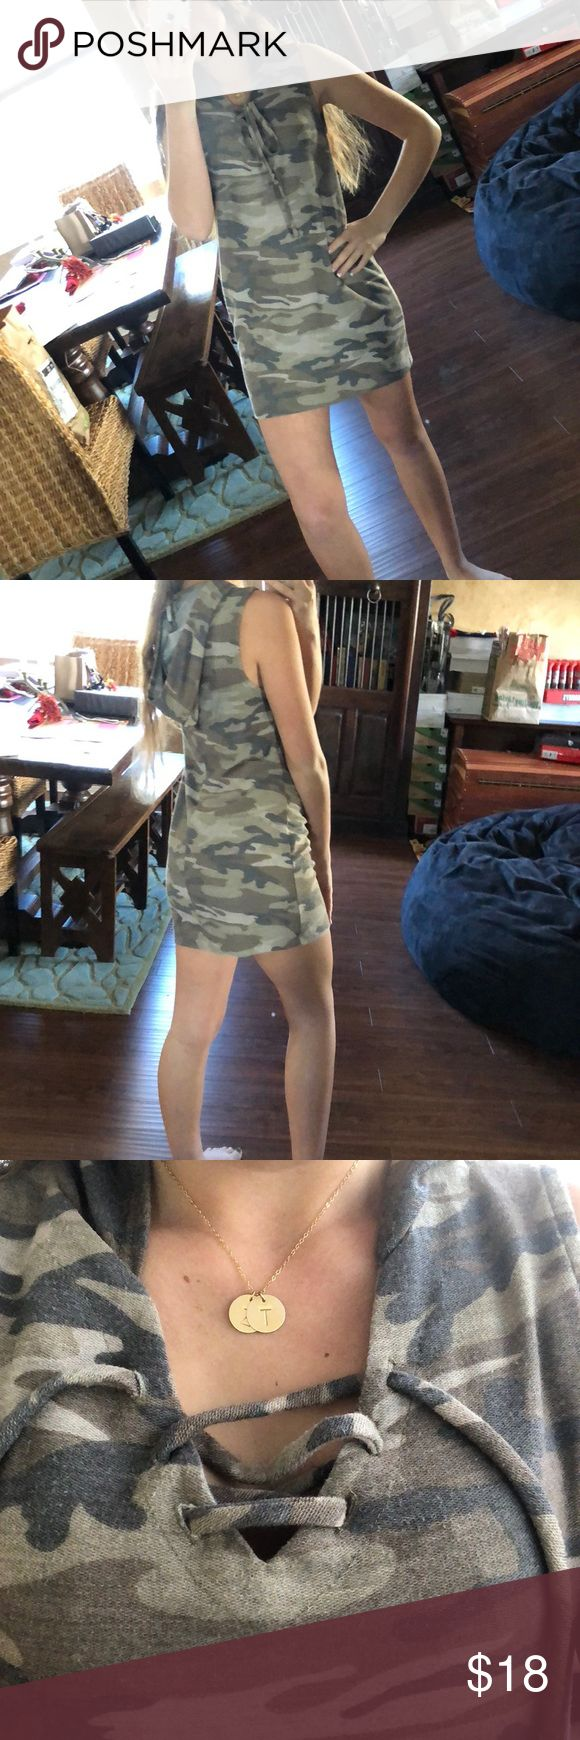 Camo tank top dress. Tank top dress camo. Laces up in the front and ties. Has a hood. Super comfortable and never worn. No damage Dresses Mini